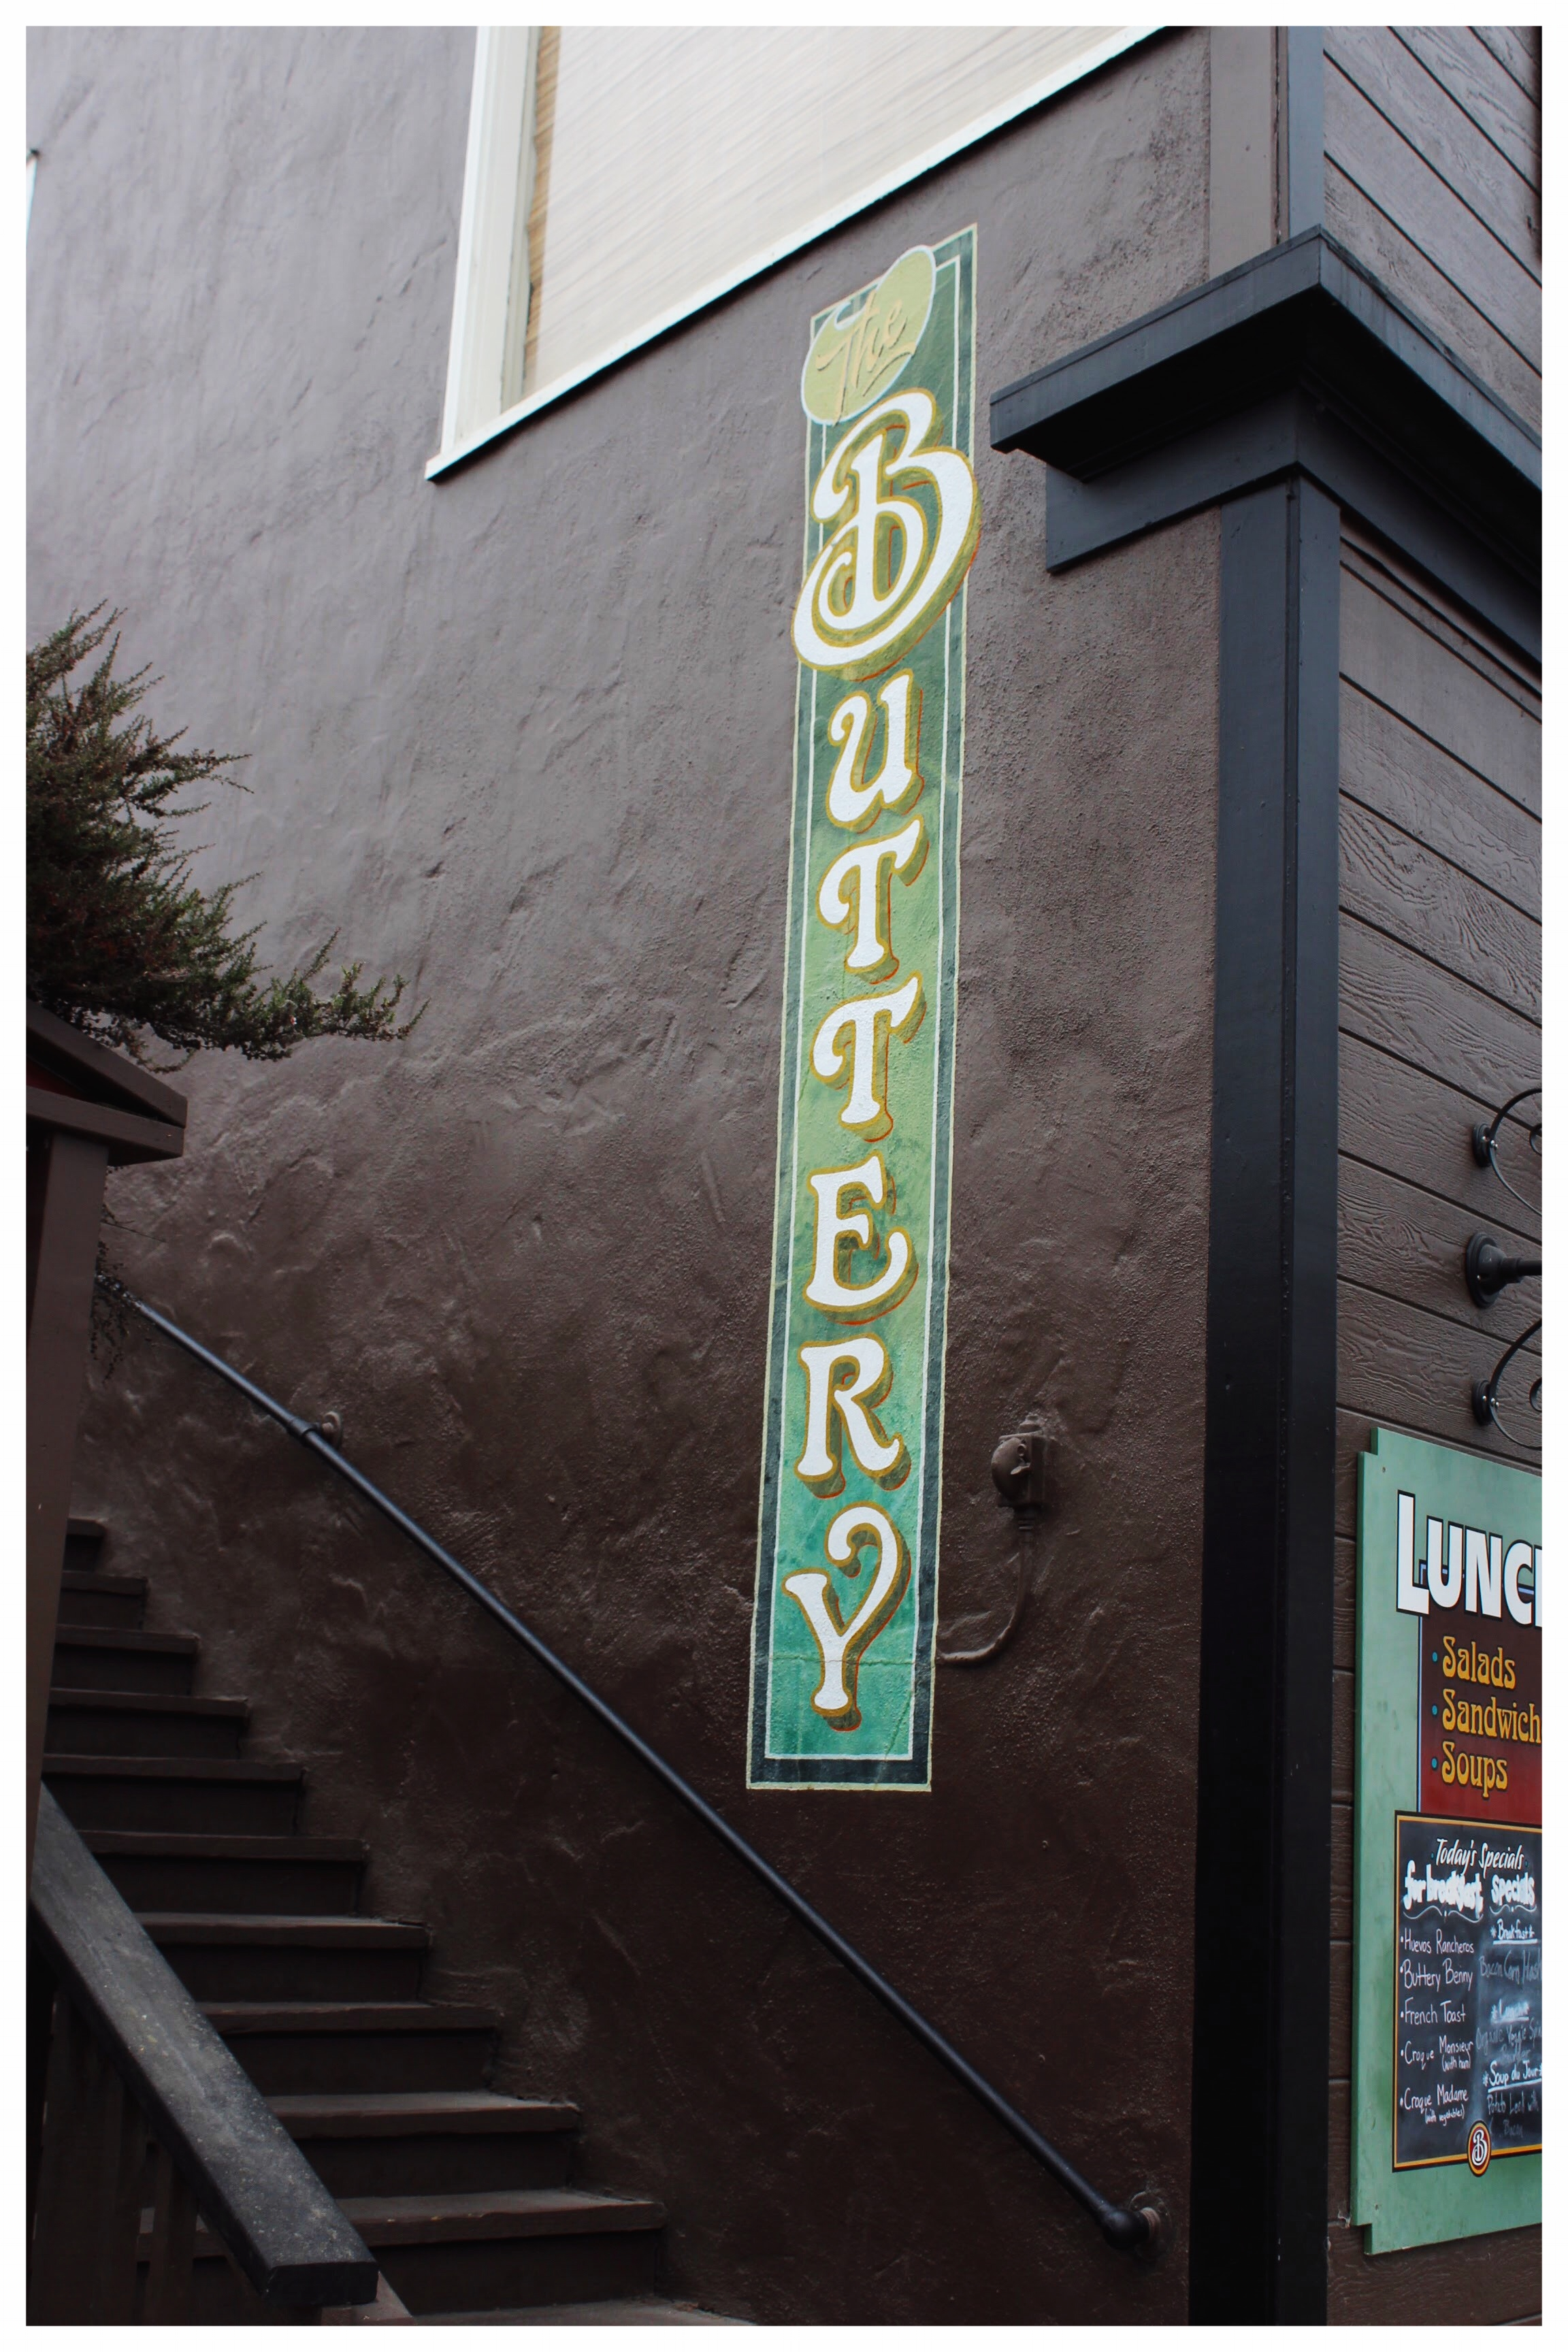 The Buttery Cafe Outdoor Signage